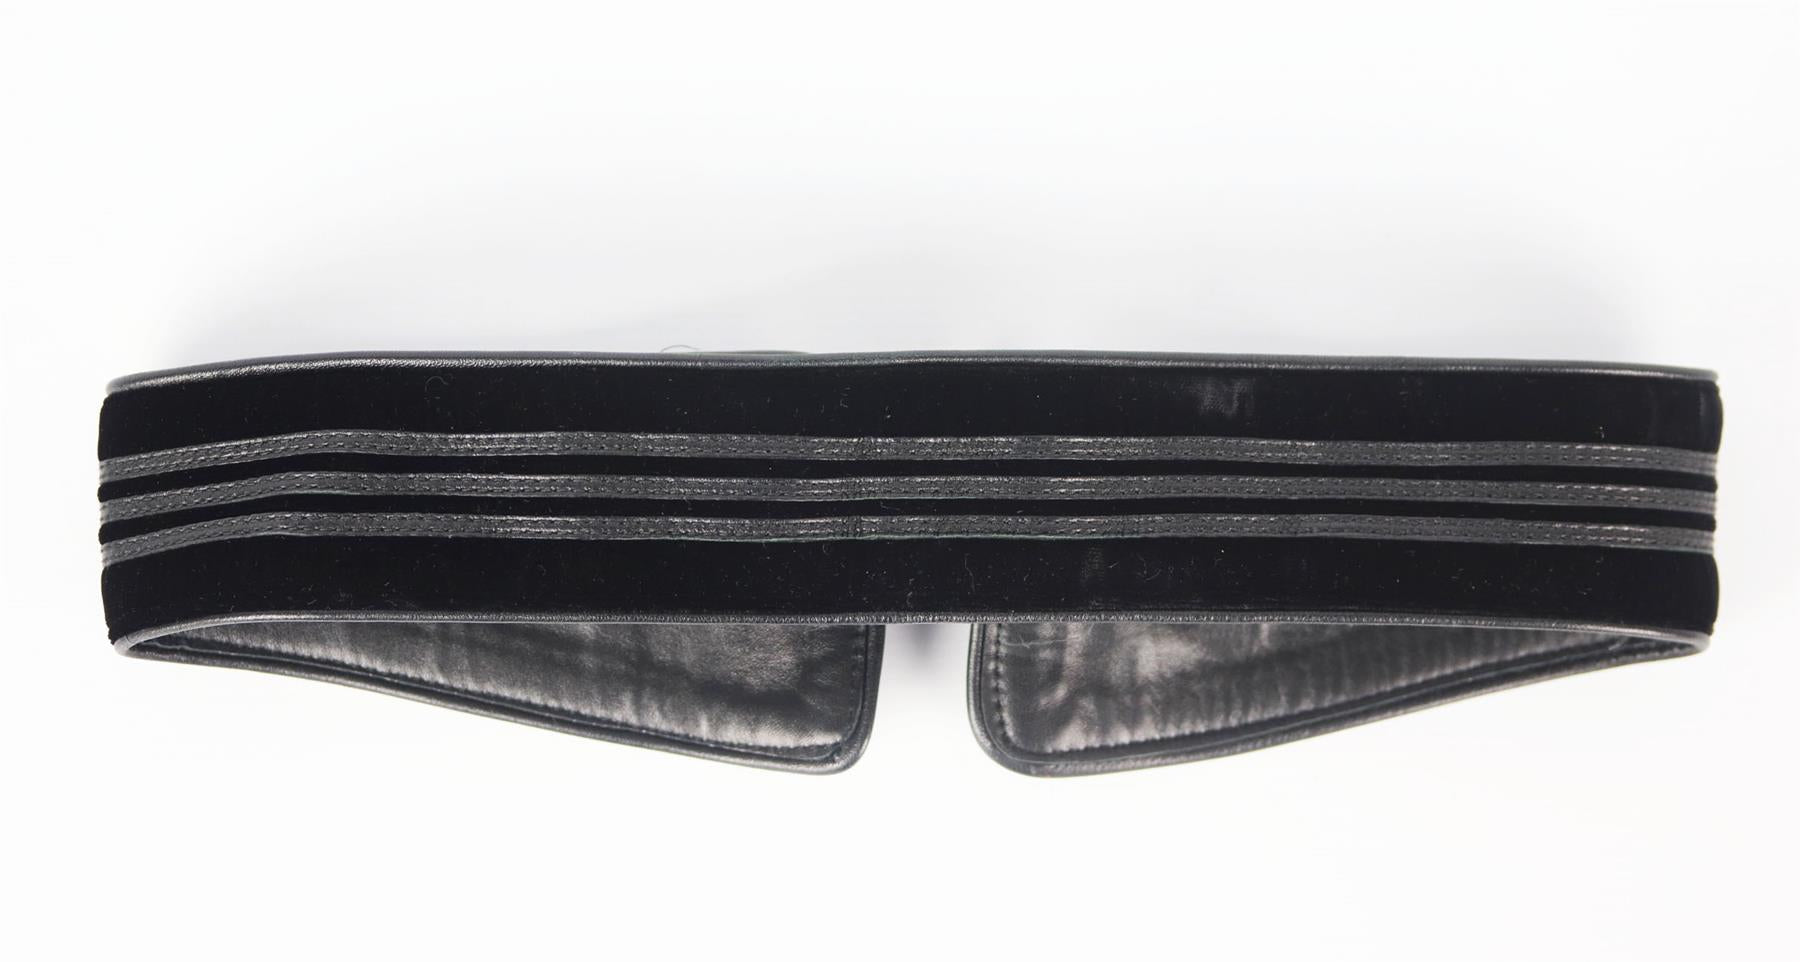 GUCCI LEATHER TRIMMED VELVET WAIST BELT 75